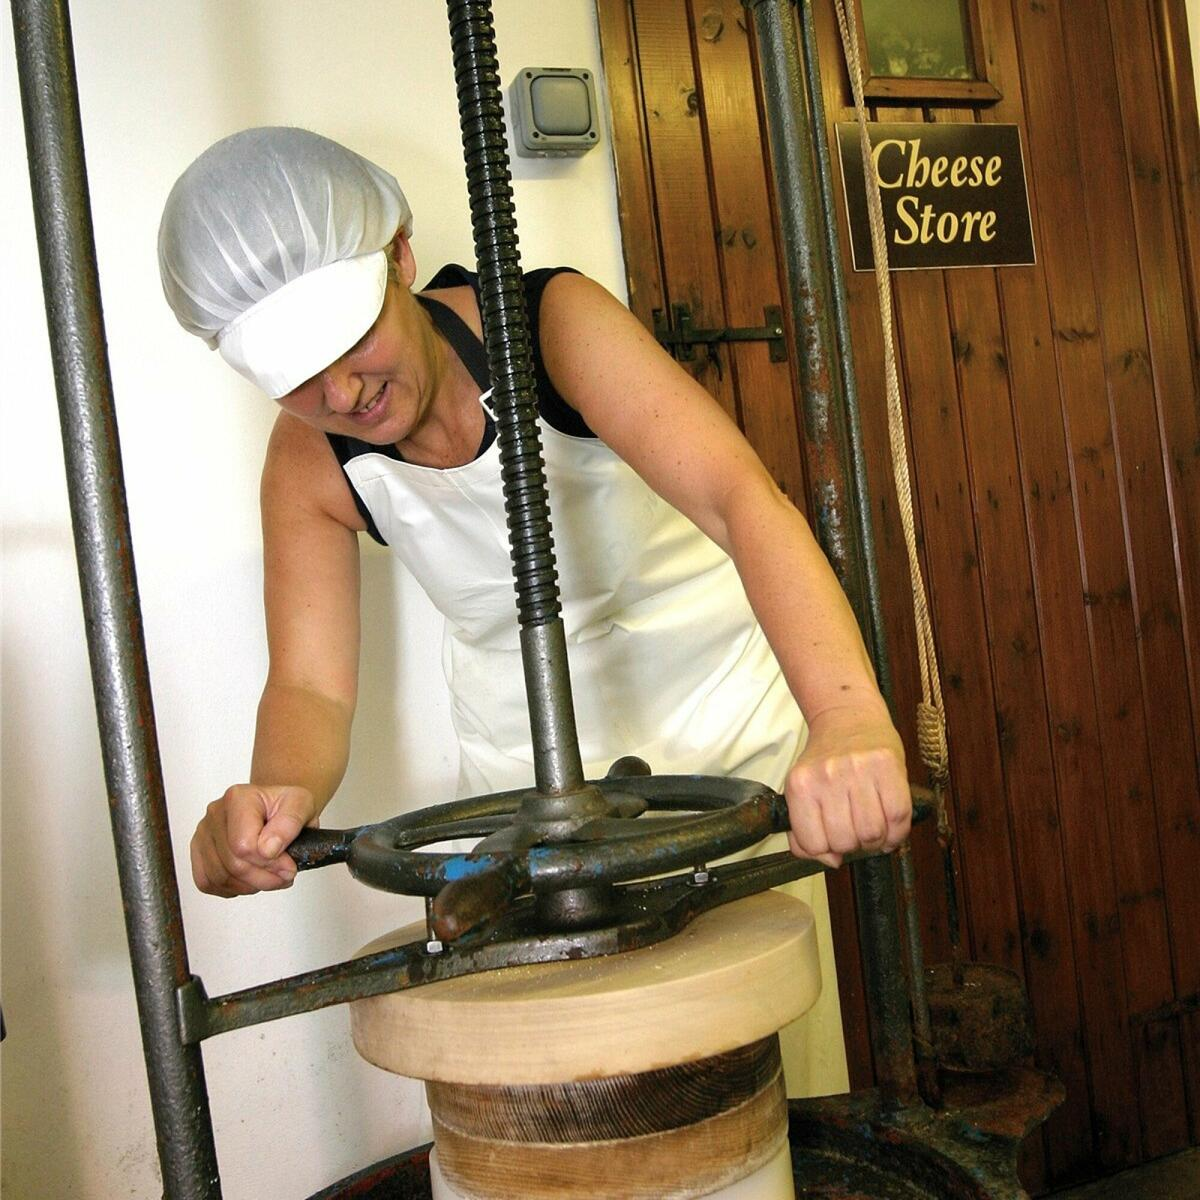 Pressing the cheese.